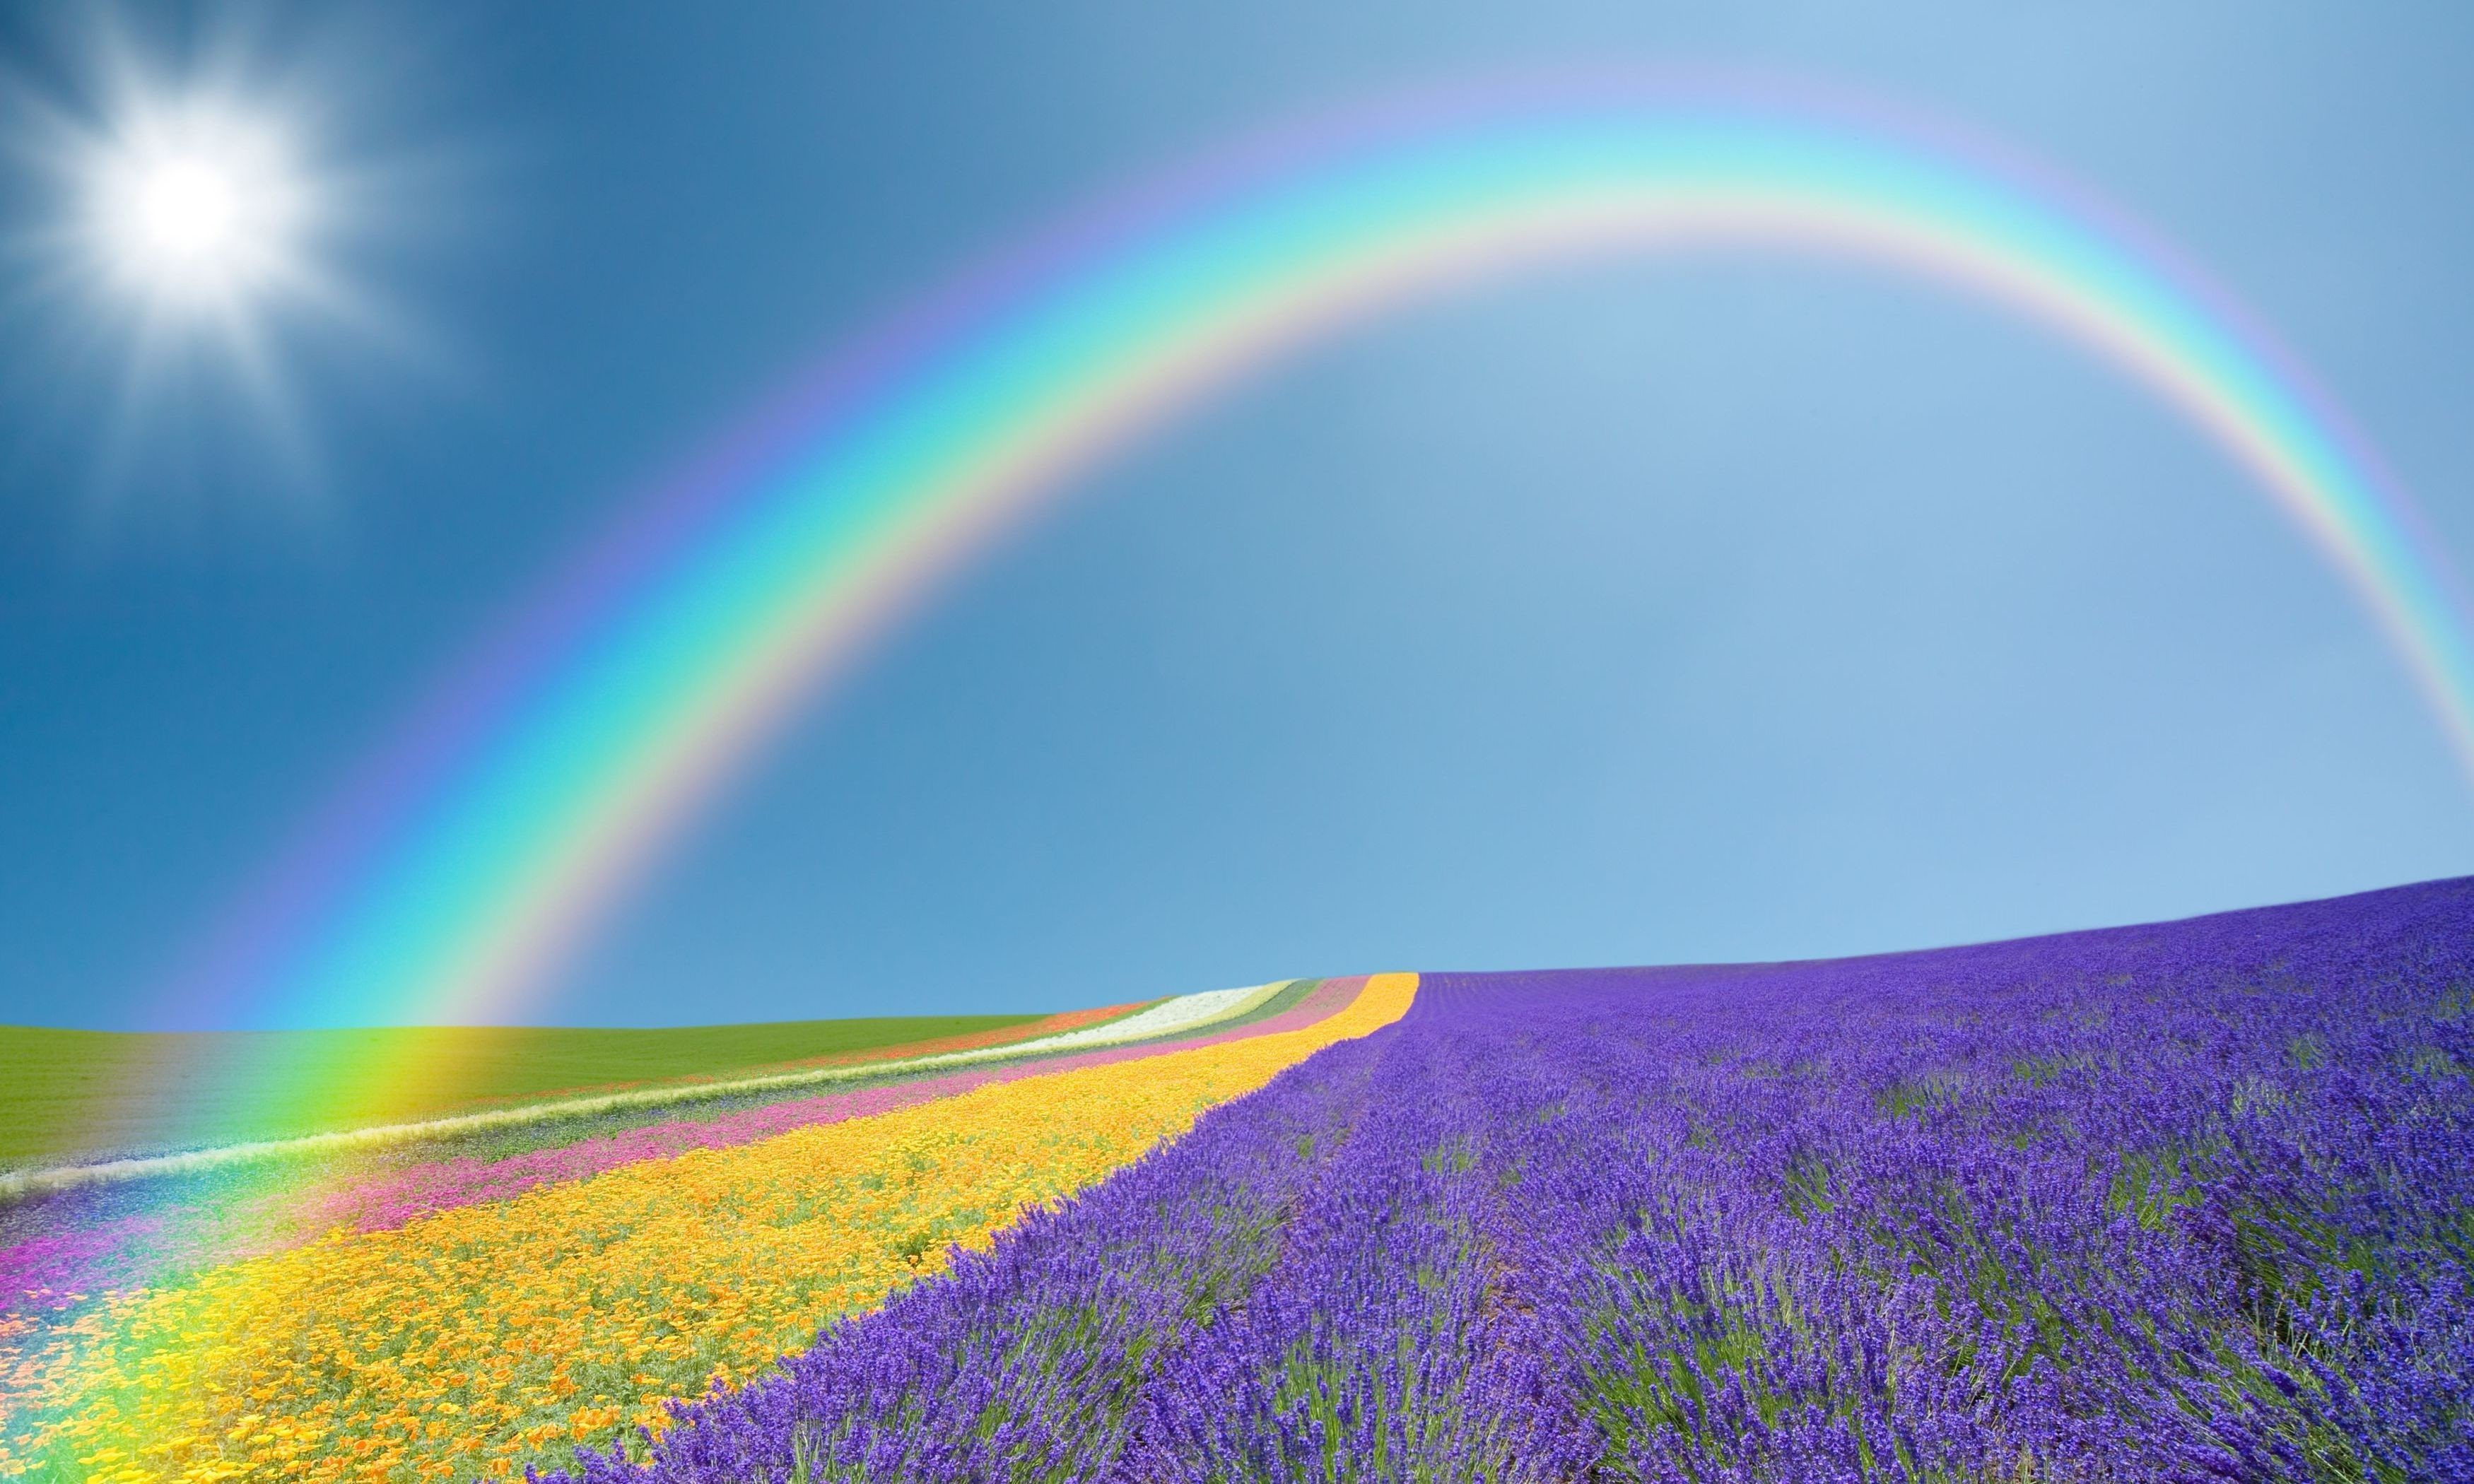 Res: 3500x2100, Rainbow Wallpaper Rainbow Wallpaper Rainbow Wallpaper Rainbow Wallpaper  Rainbow Wallpaper ...